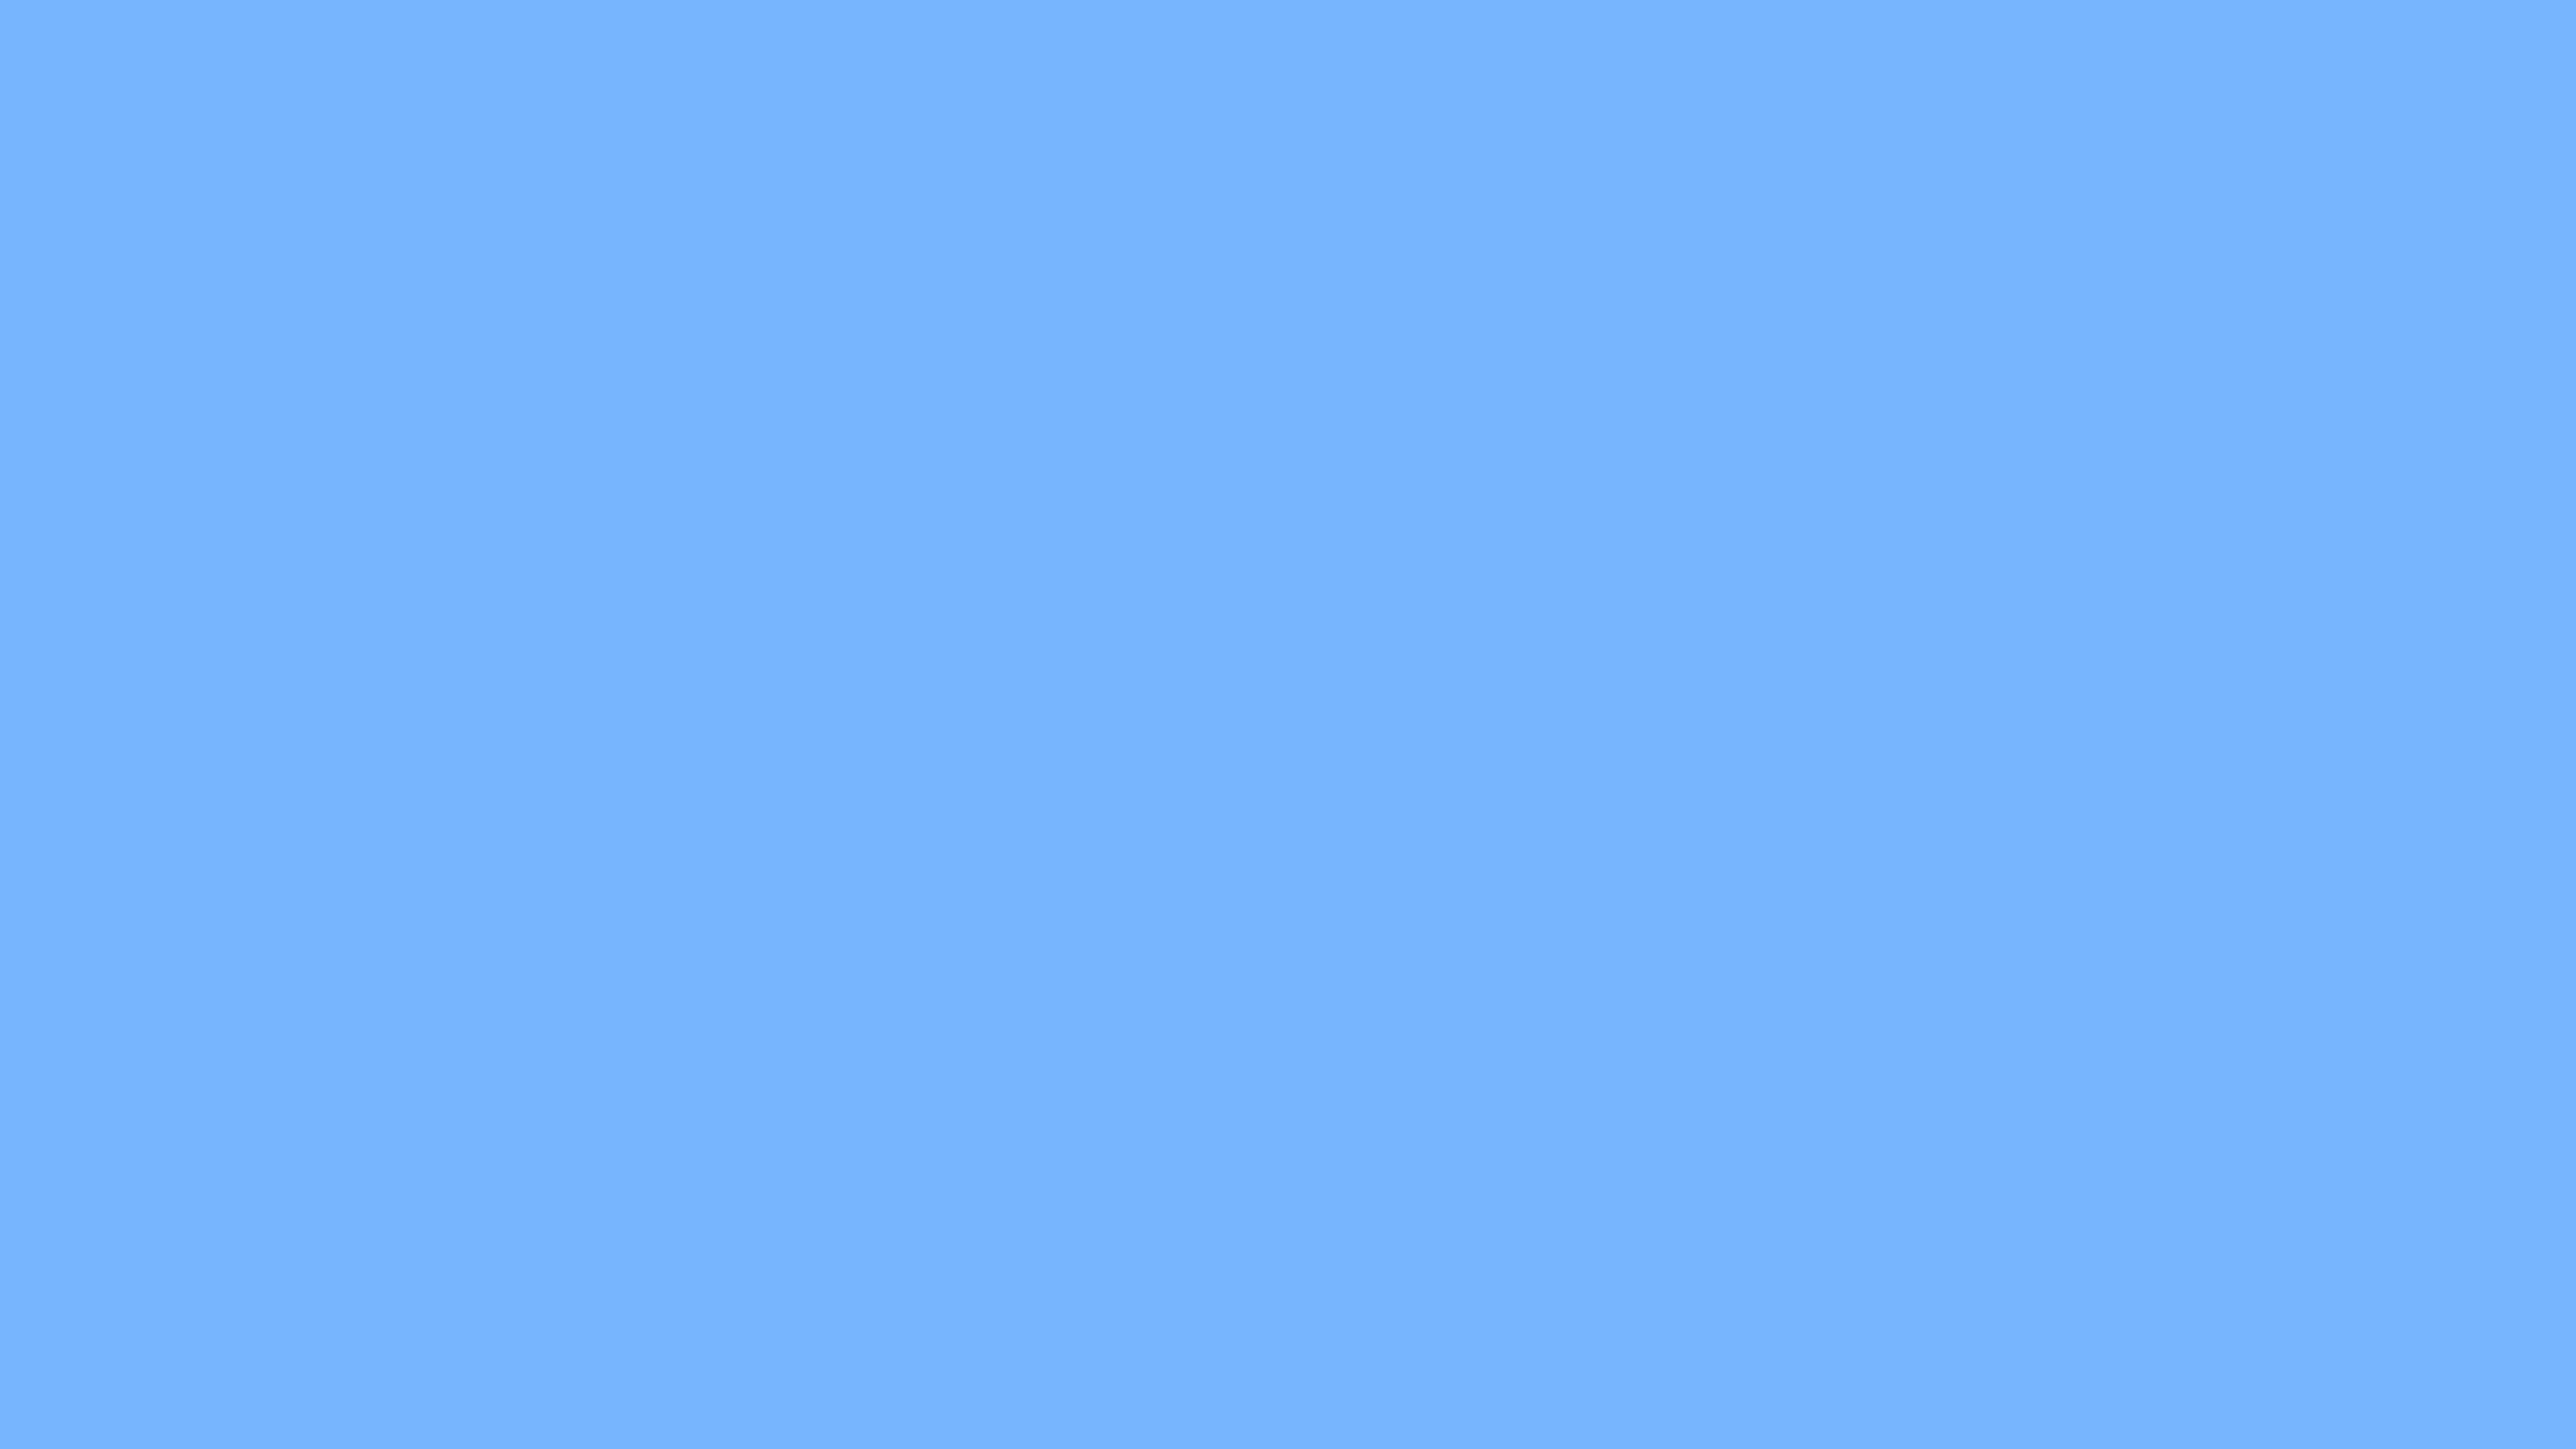 5120x2880 French Sky Blue Solid Color Background